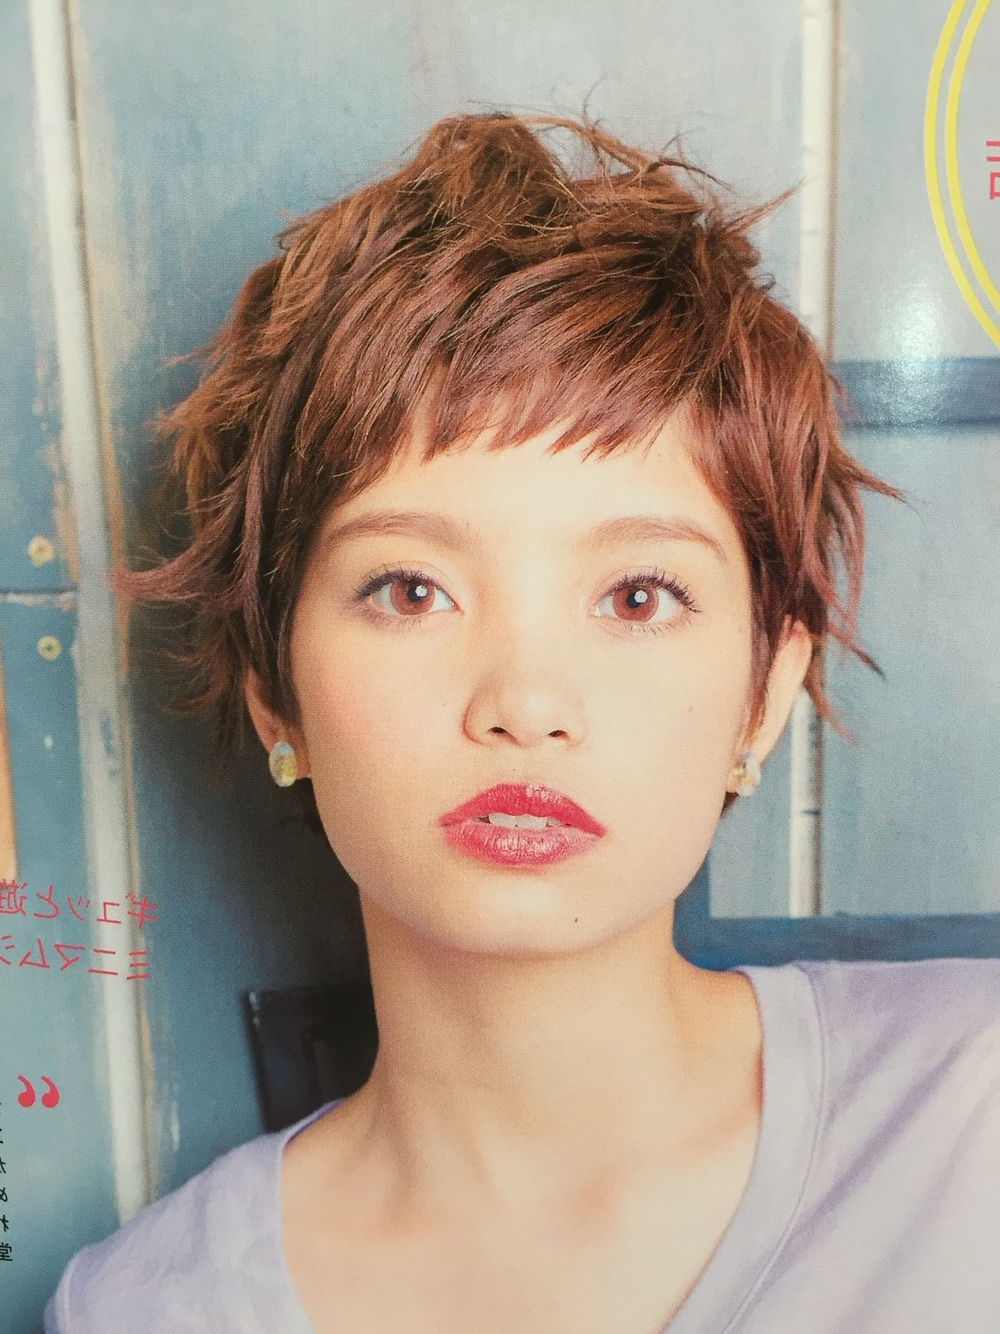 Short Choppy Haircut | Stylish Short Haircuts In 2018 | Pinterest Pertaining To Choppy Short Hairstyles For Older Women (View 10 of 25)